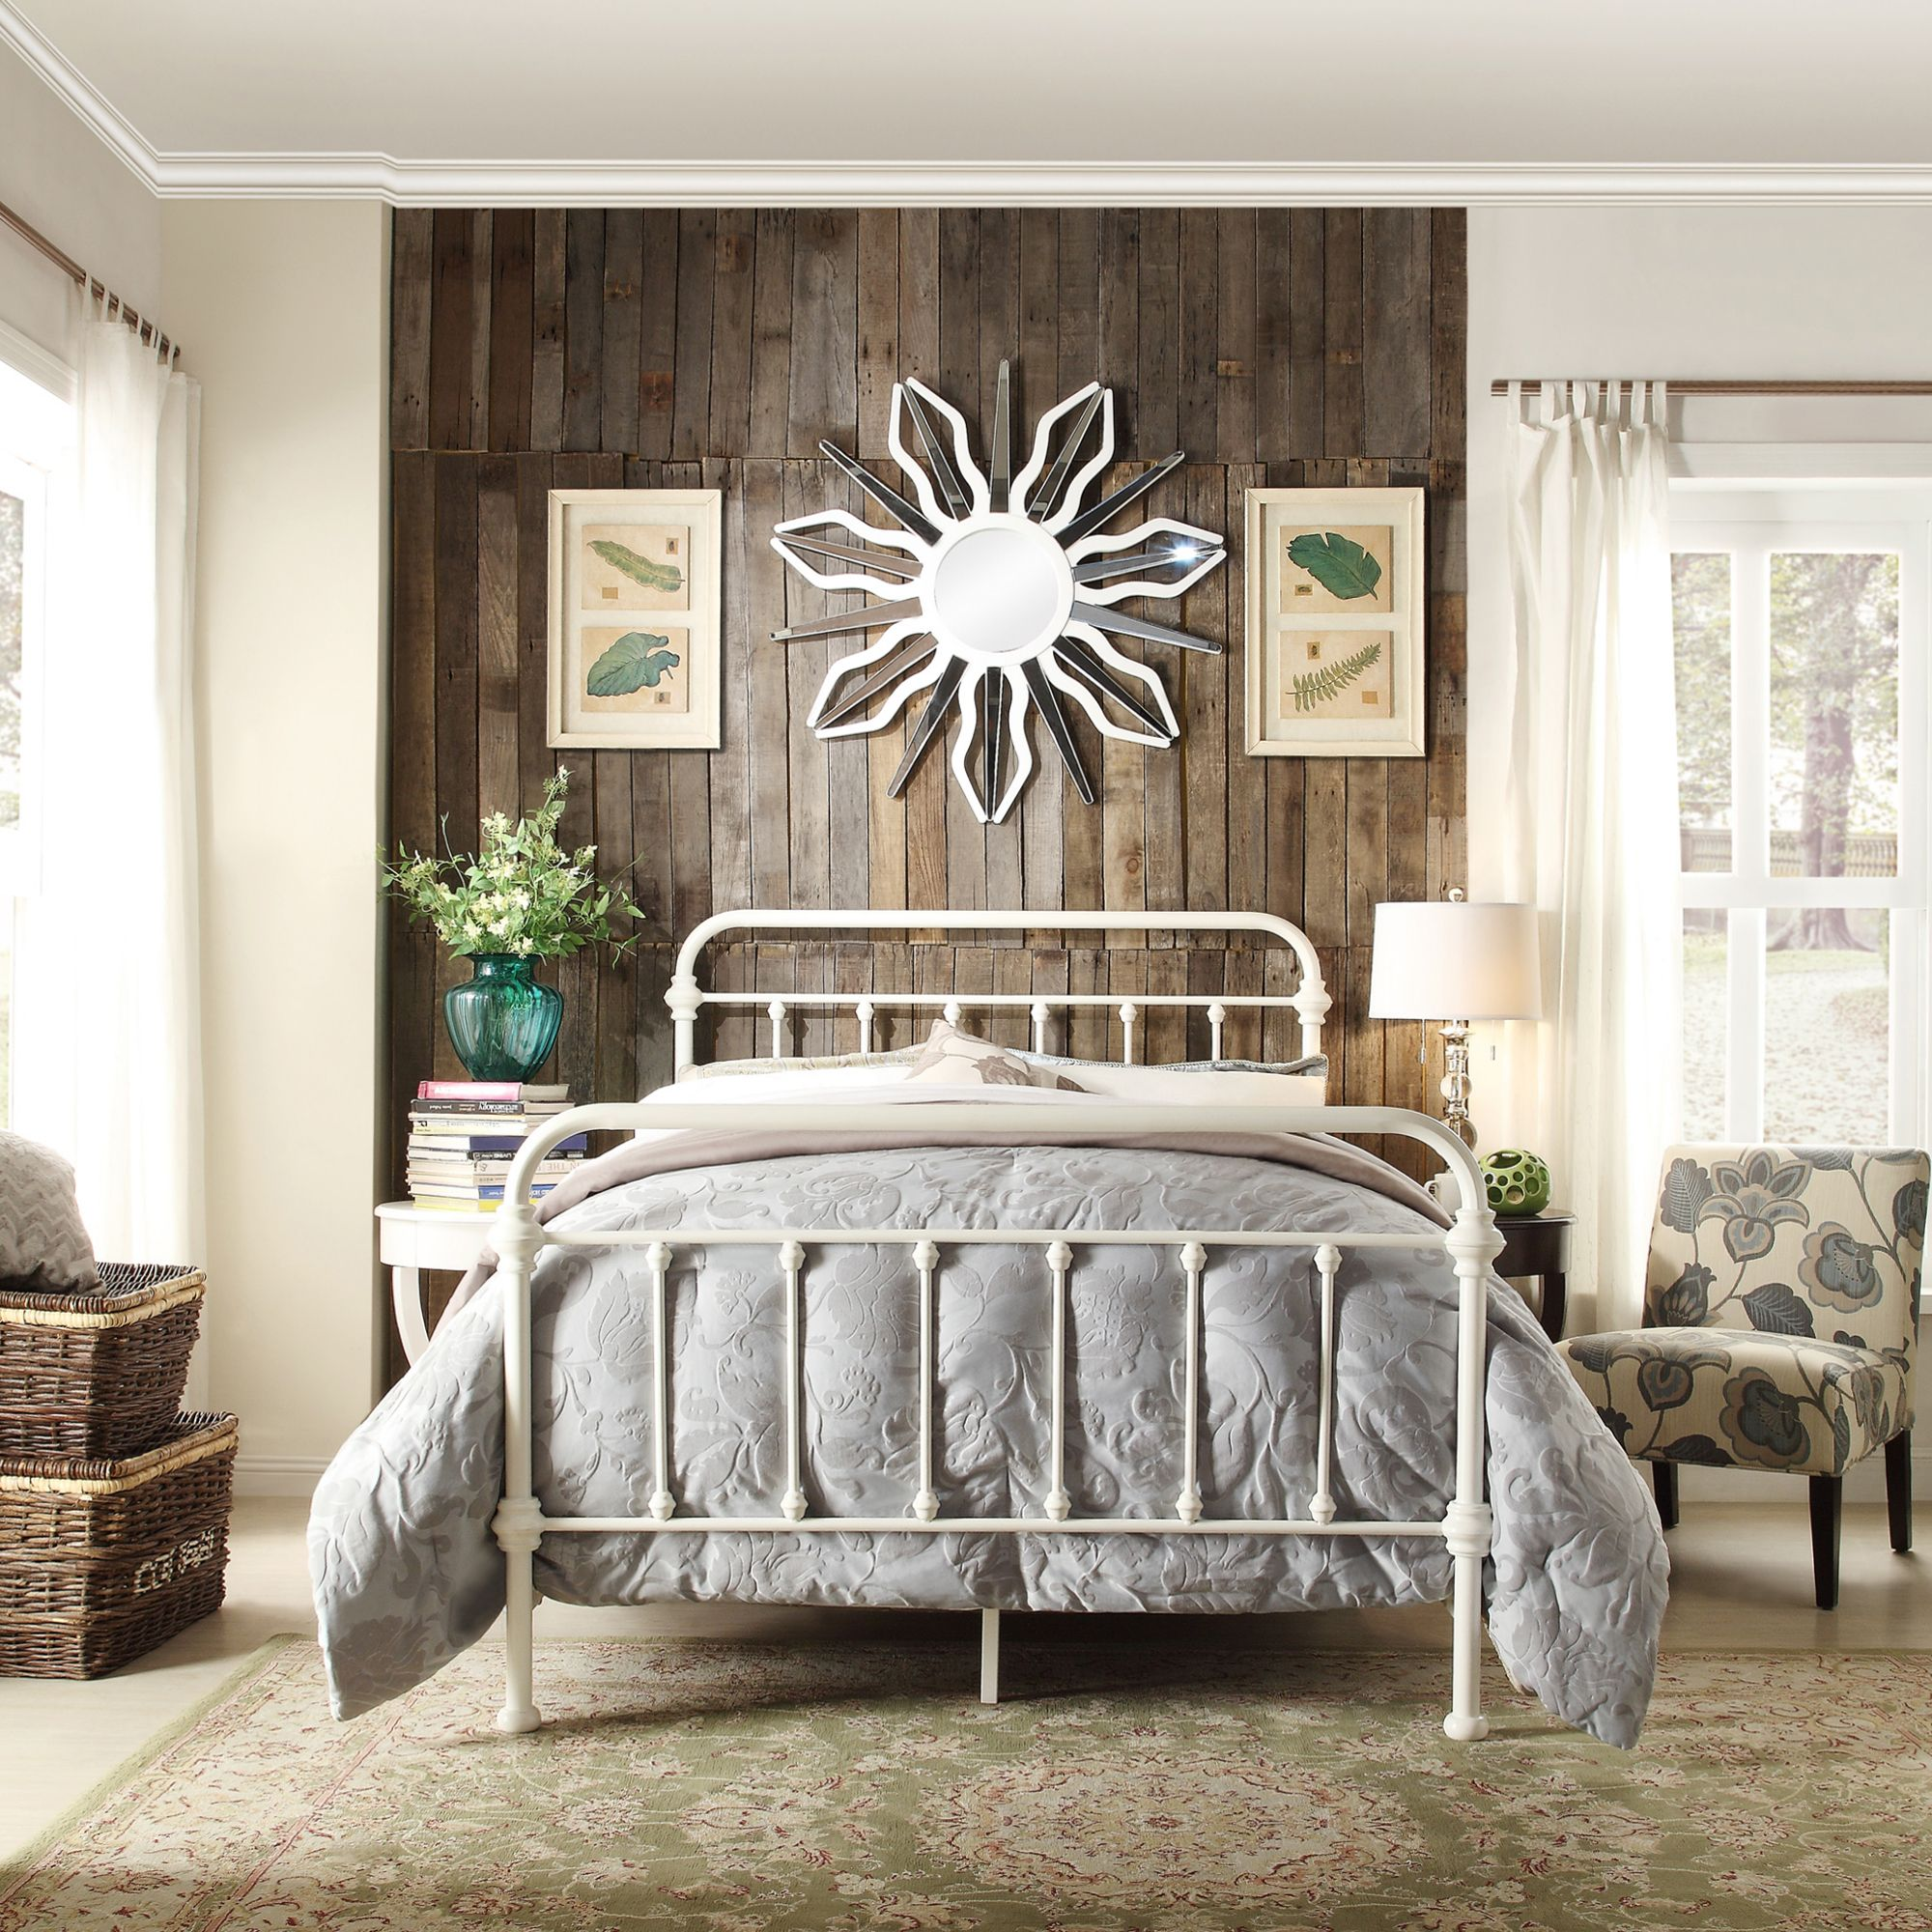 Farmhouse Style Is All About Being Both Rustic And Elegant Like This Bedford White Metal Bed Super Affo White Iron Beds White Metal Bed White Metal Bed Frame